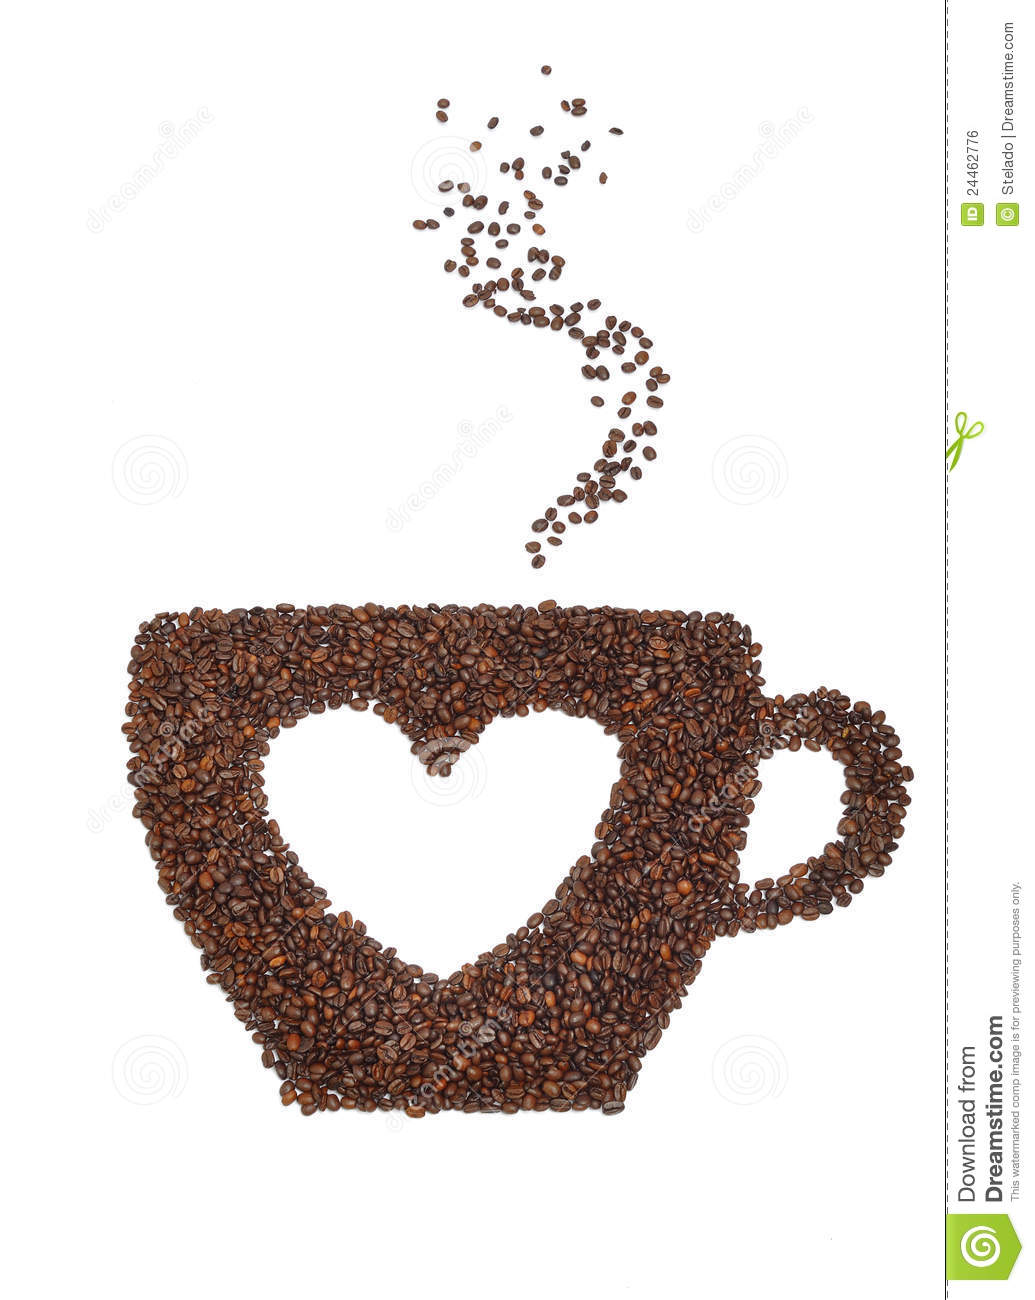 Cup Of Coffee With A Heart Symbol Royalty Free Stock Image - Image ...